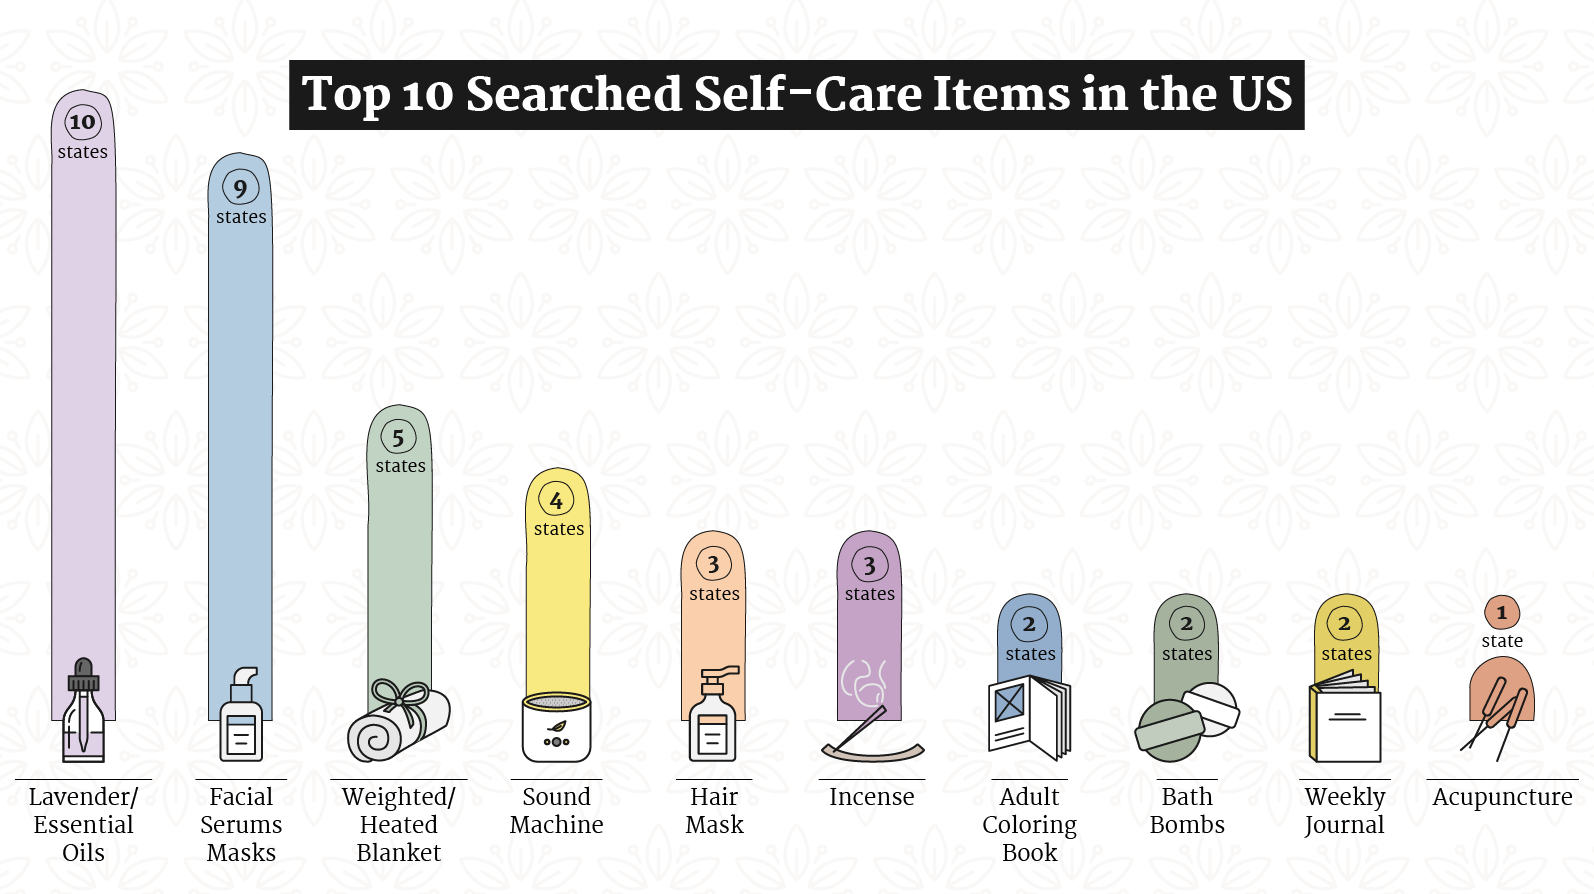 The Top-Searched Self-Care Item by State National Trends